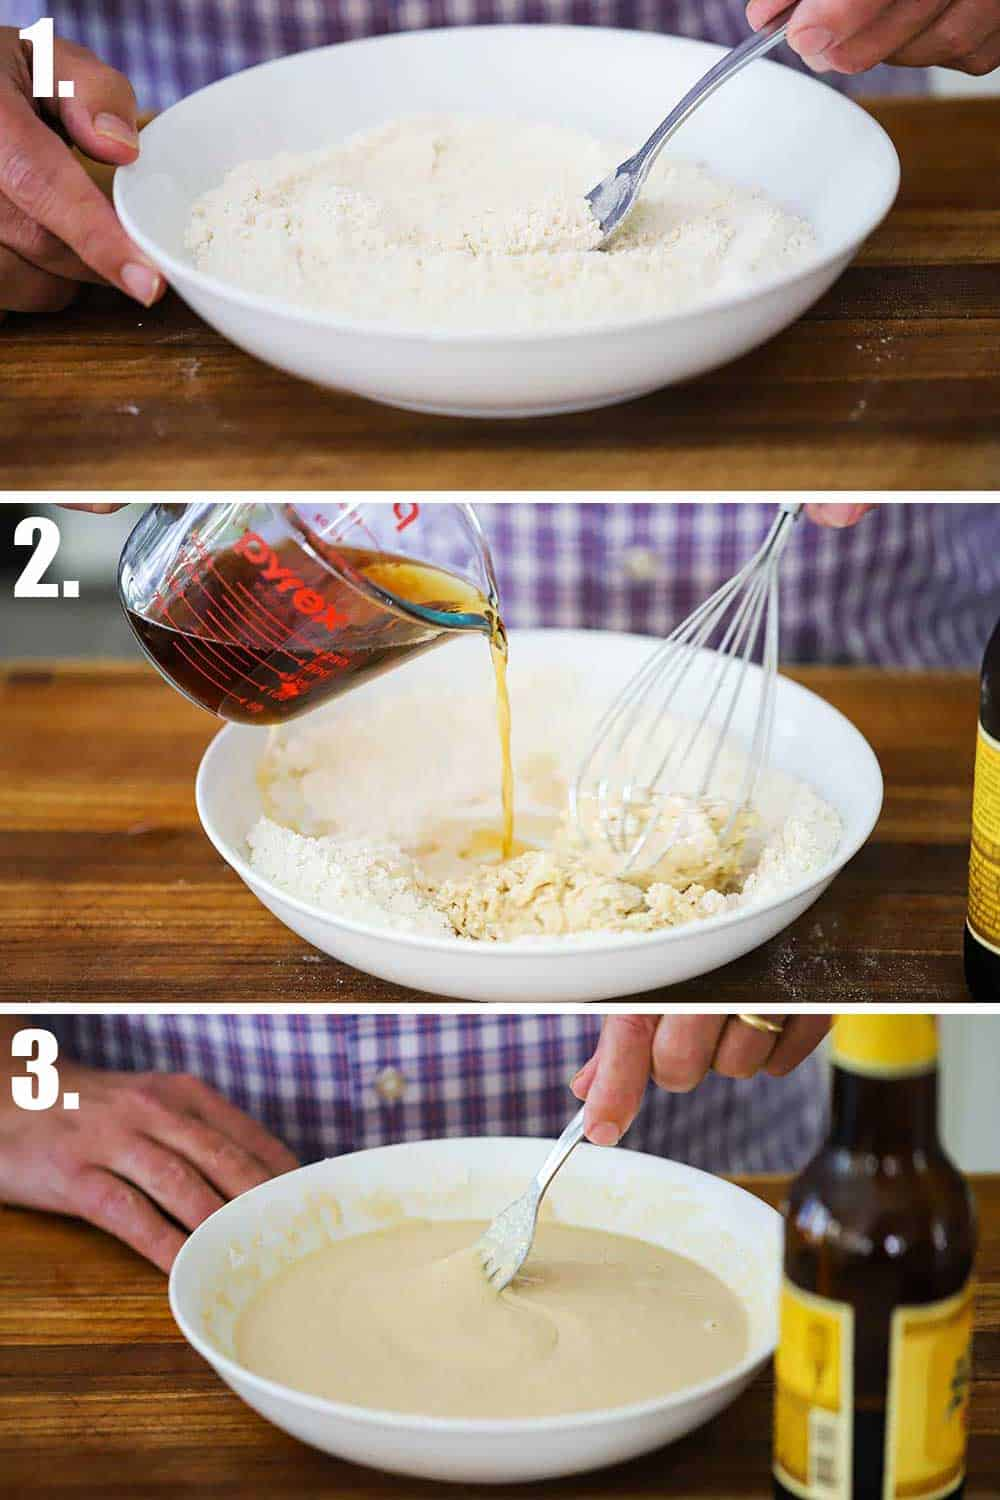 3 stacked images with top a white bowl filled with flour and a fork, and next beer pouring into the flour, and bottom a fork blending the batter.